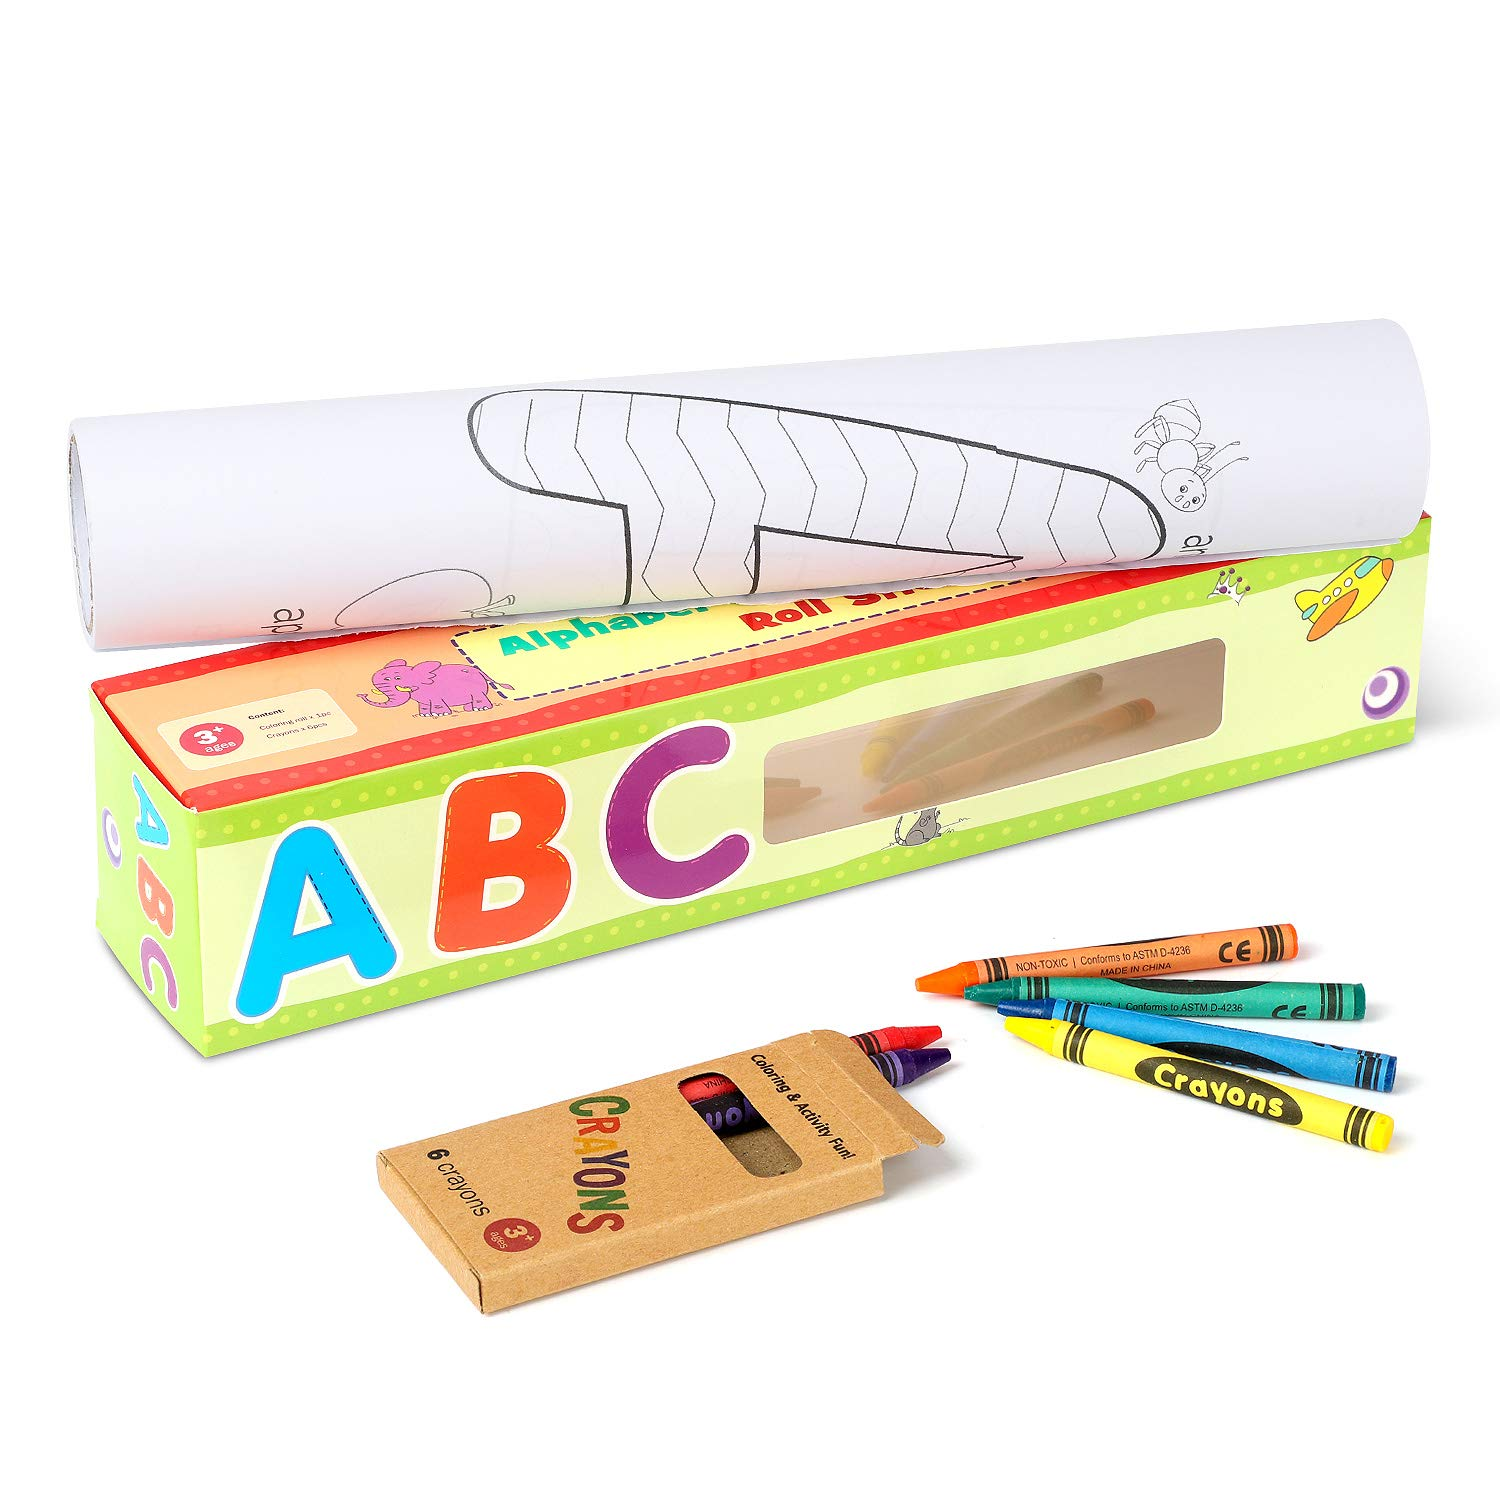 15.6-Foot Sticker Coloring Roll Alphabet Continuous Coloring Paper,Great for Group Coloring Ages 3 BetiBeti Learn Your ABCs